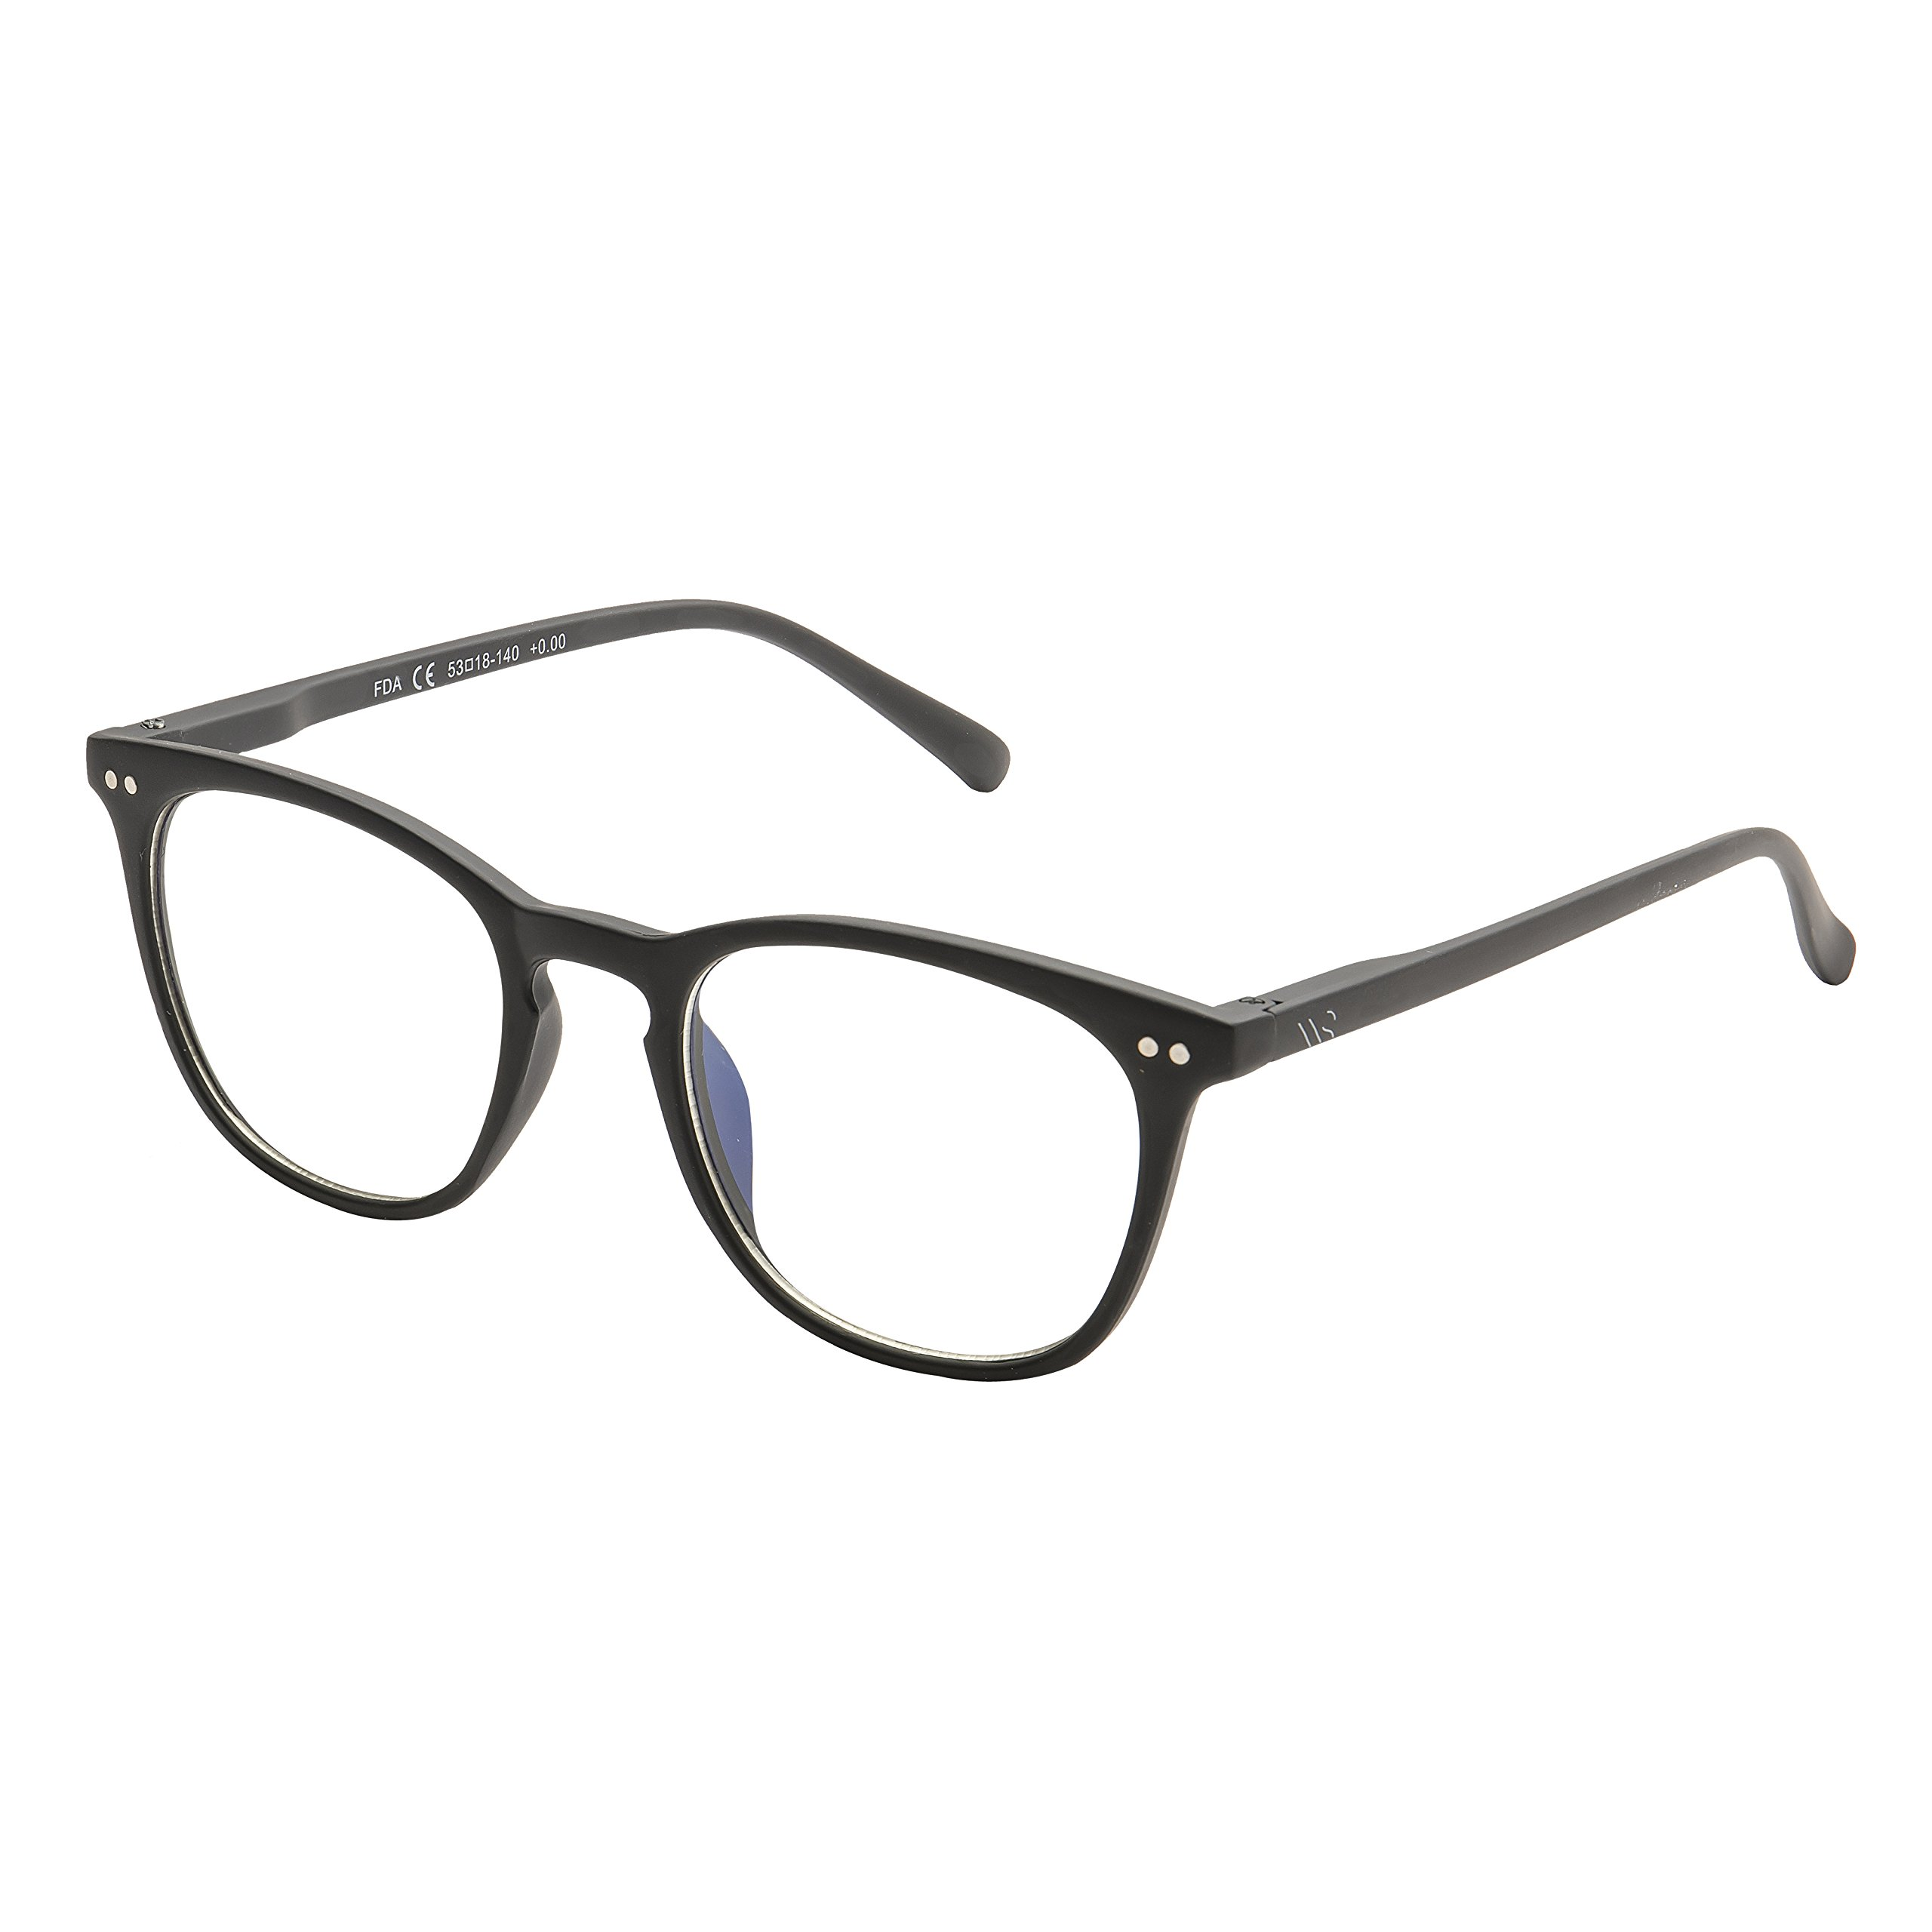 Blue Light Blocking Glasses,With Anti-Glare,Cut UV400 Transparent Lens,Computer Reading Glasses,Anti Eyestrain/Anti Scratch/Anti Smudgy,Sleep Better Work better for Women/Men(Black | No Magnification)